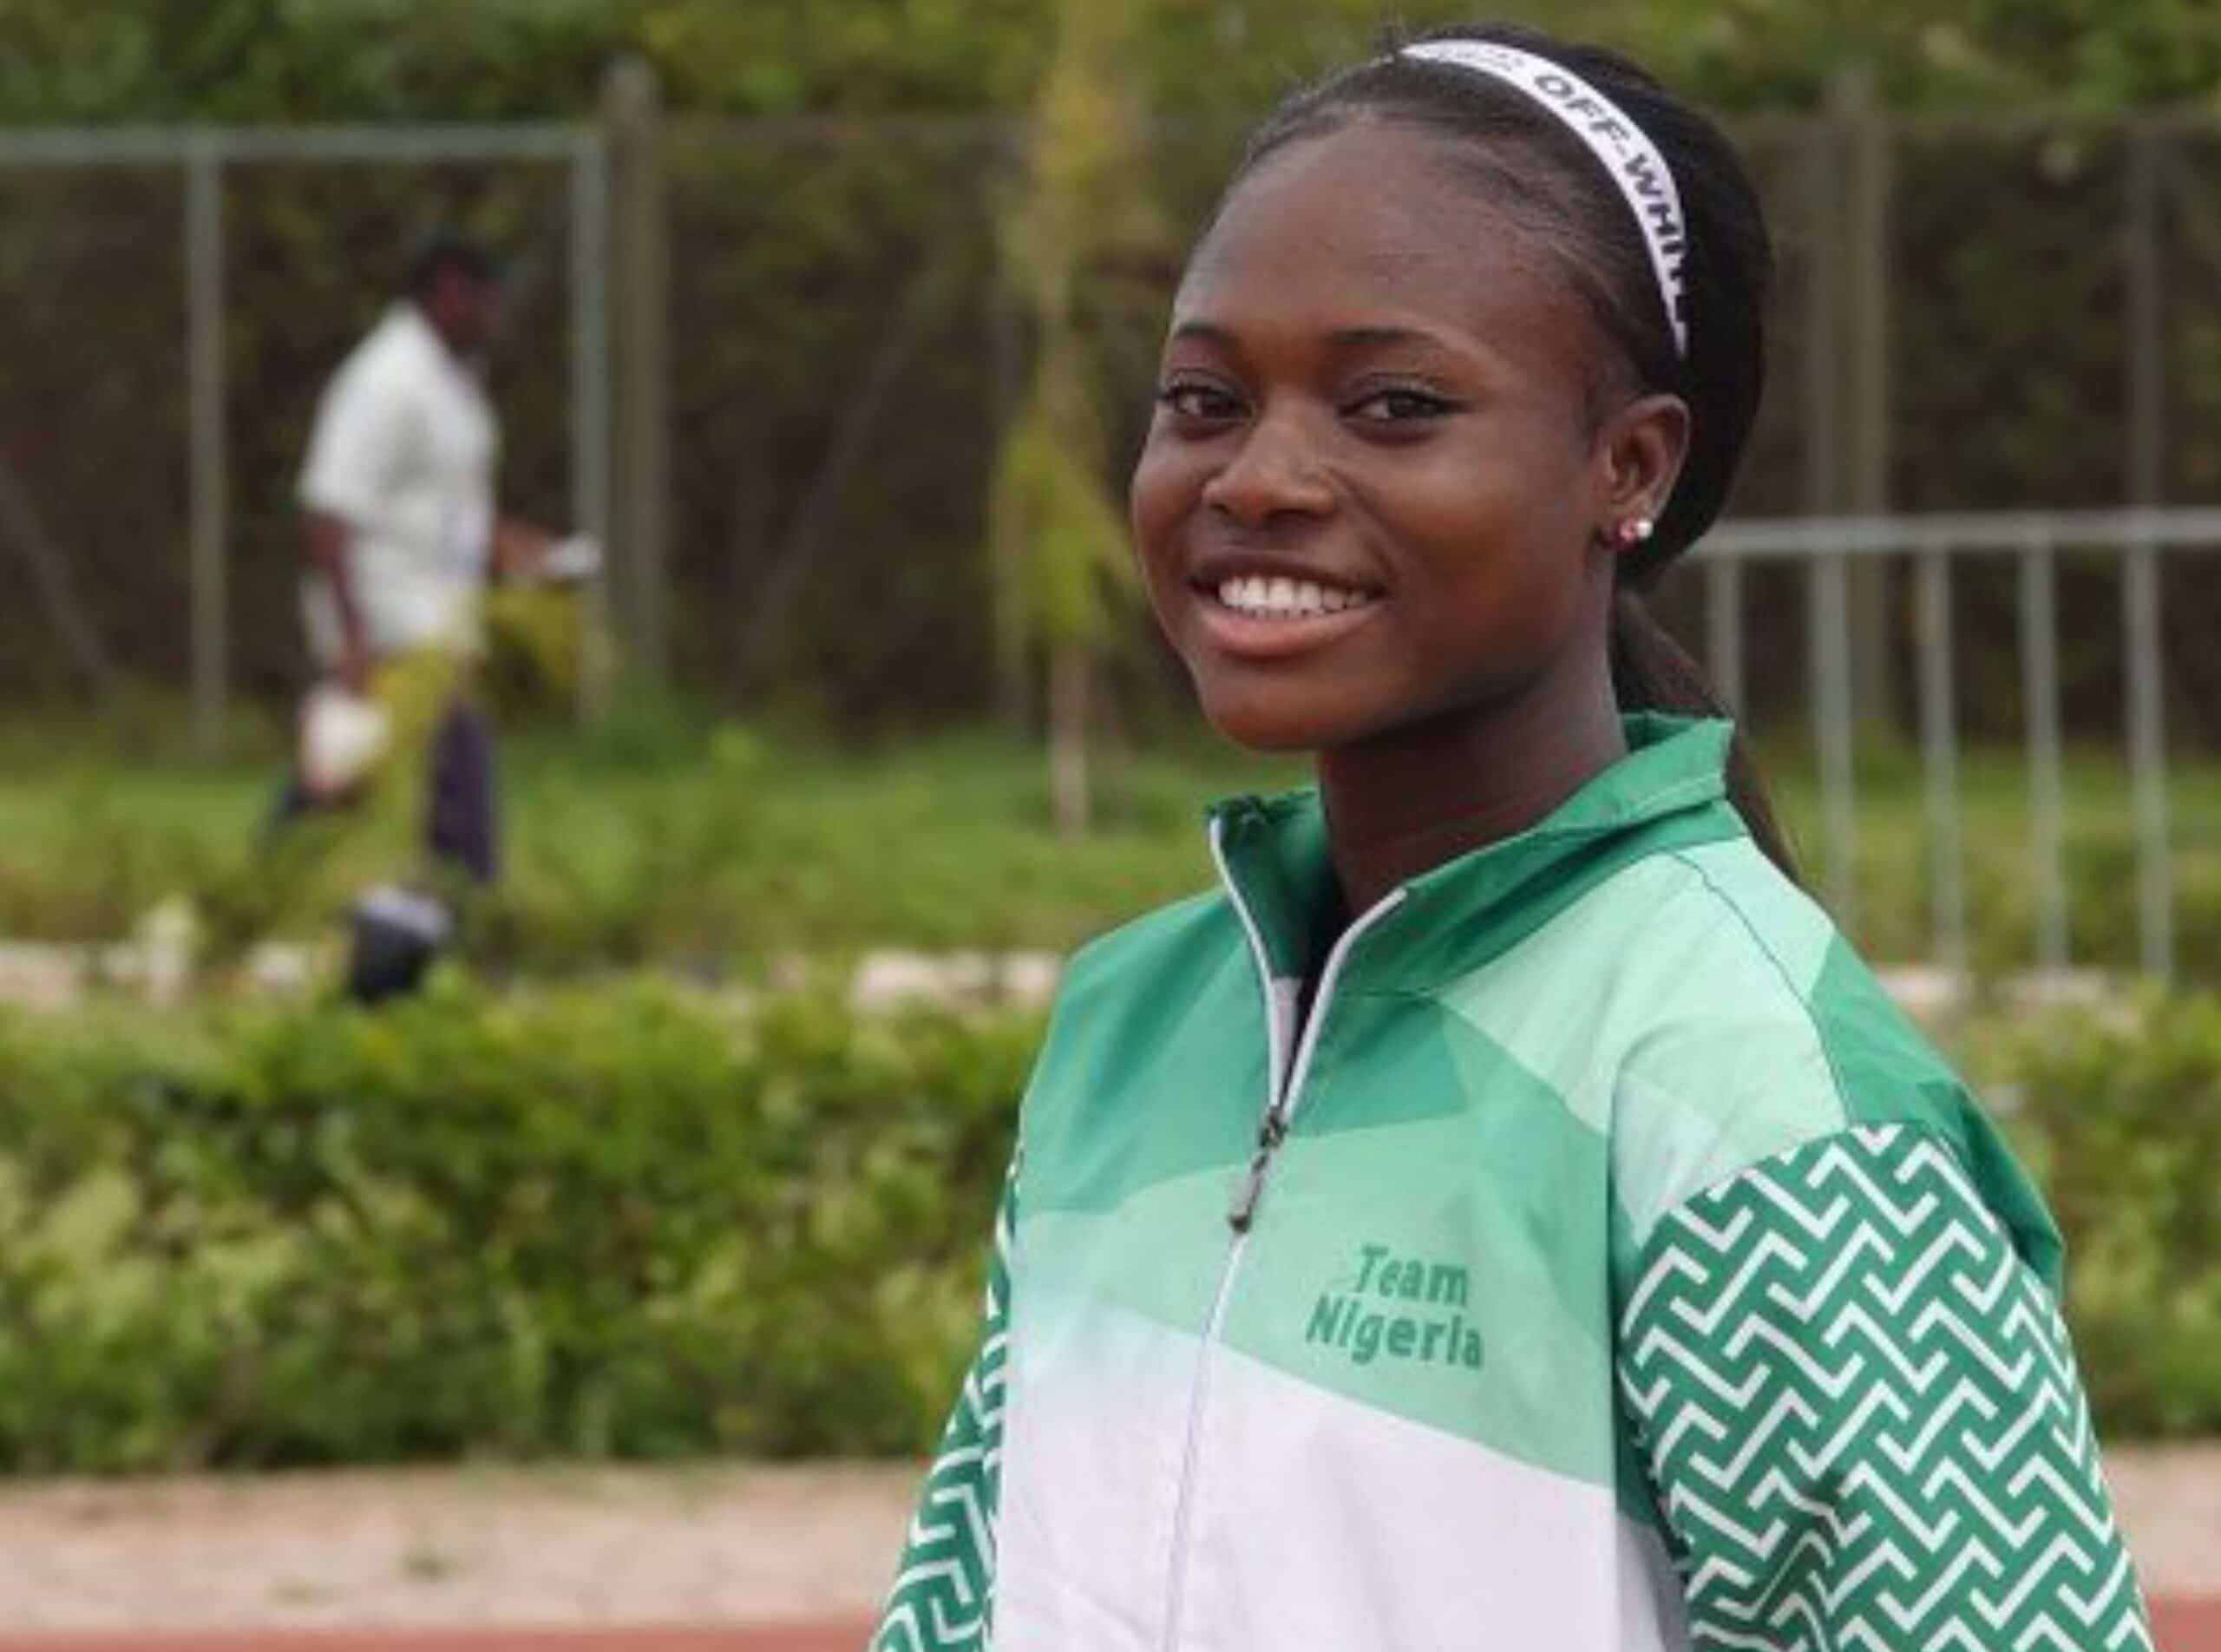 Ofili To Battle Tokyo Olympics Silver Medallist, Mboma For U20 200m Title